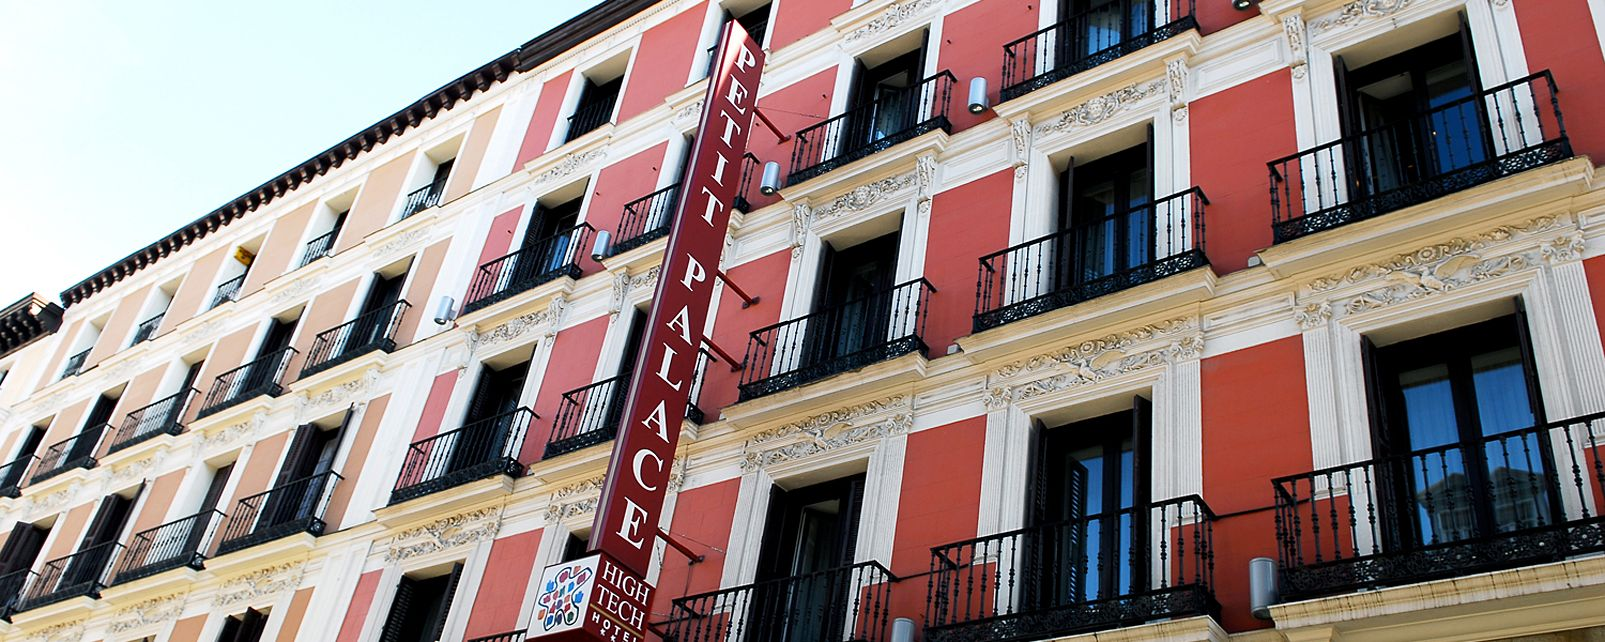 Hotel petit palace arenal madrid for Hotel calle arenal madrid